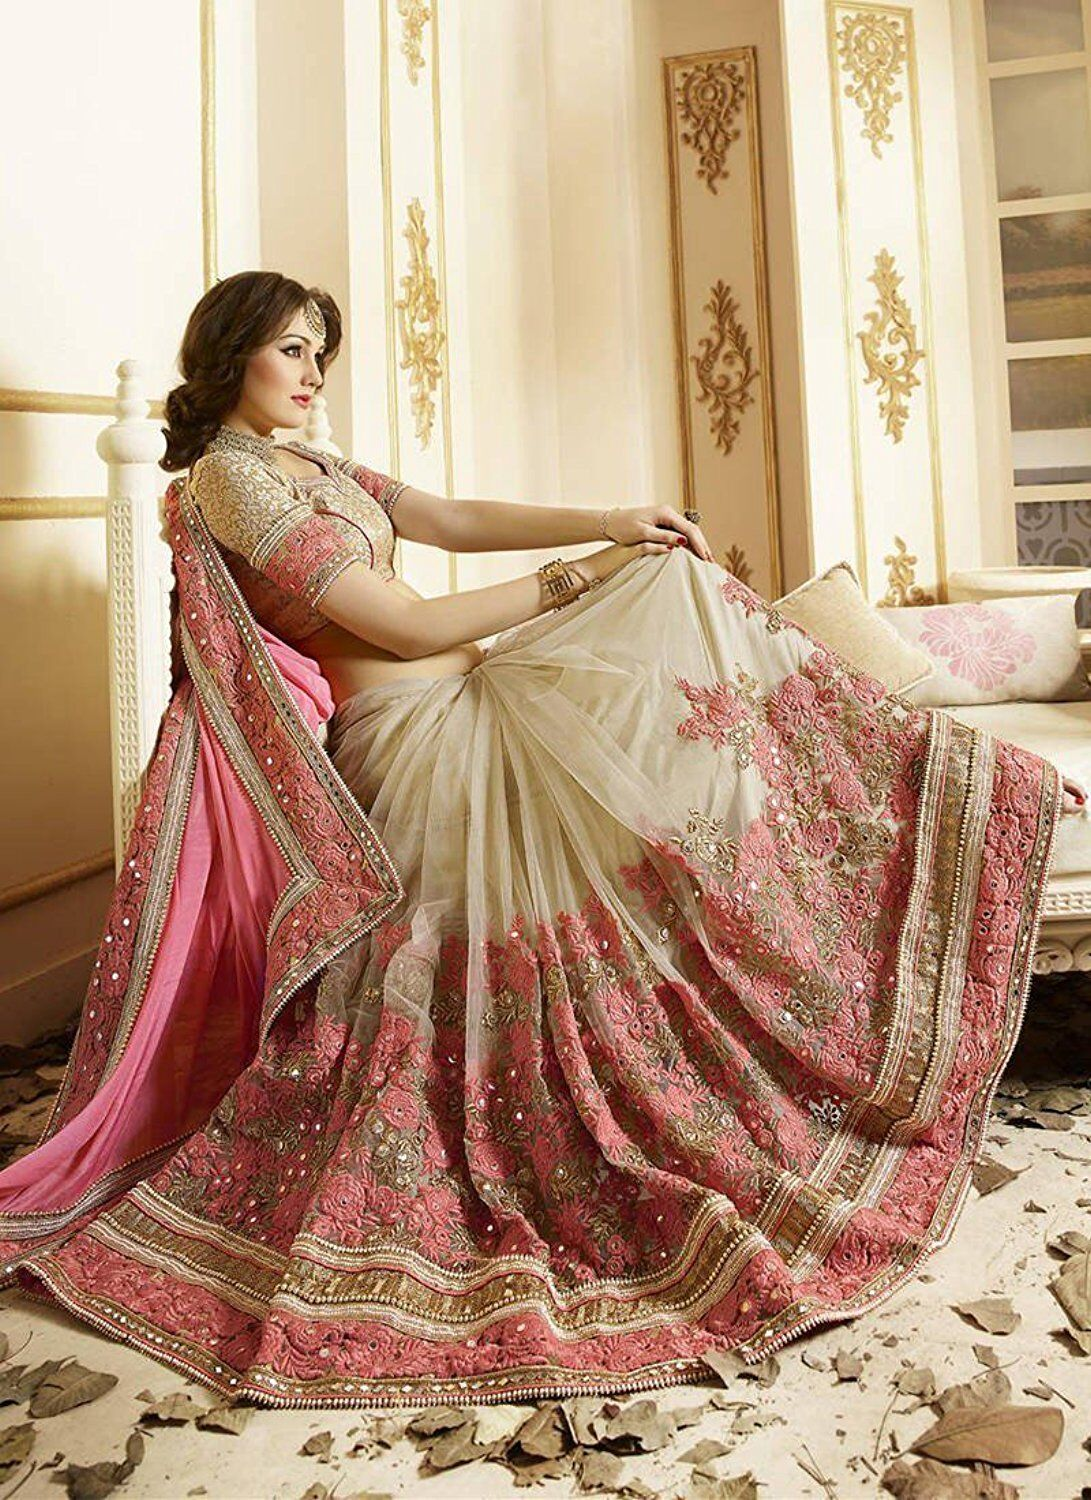 Entrancing Blossom Pink Georgette Designer Saree With Blouse